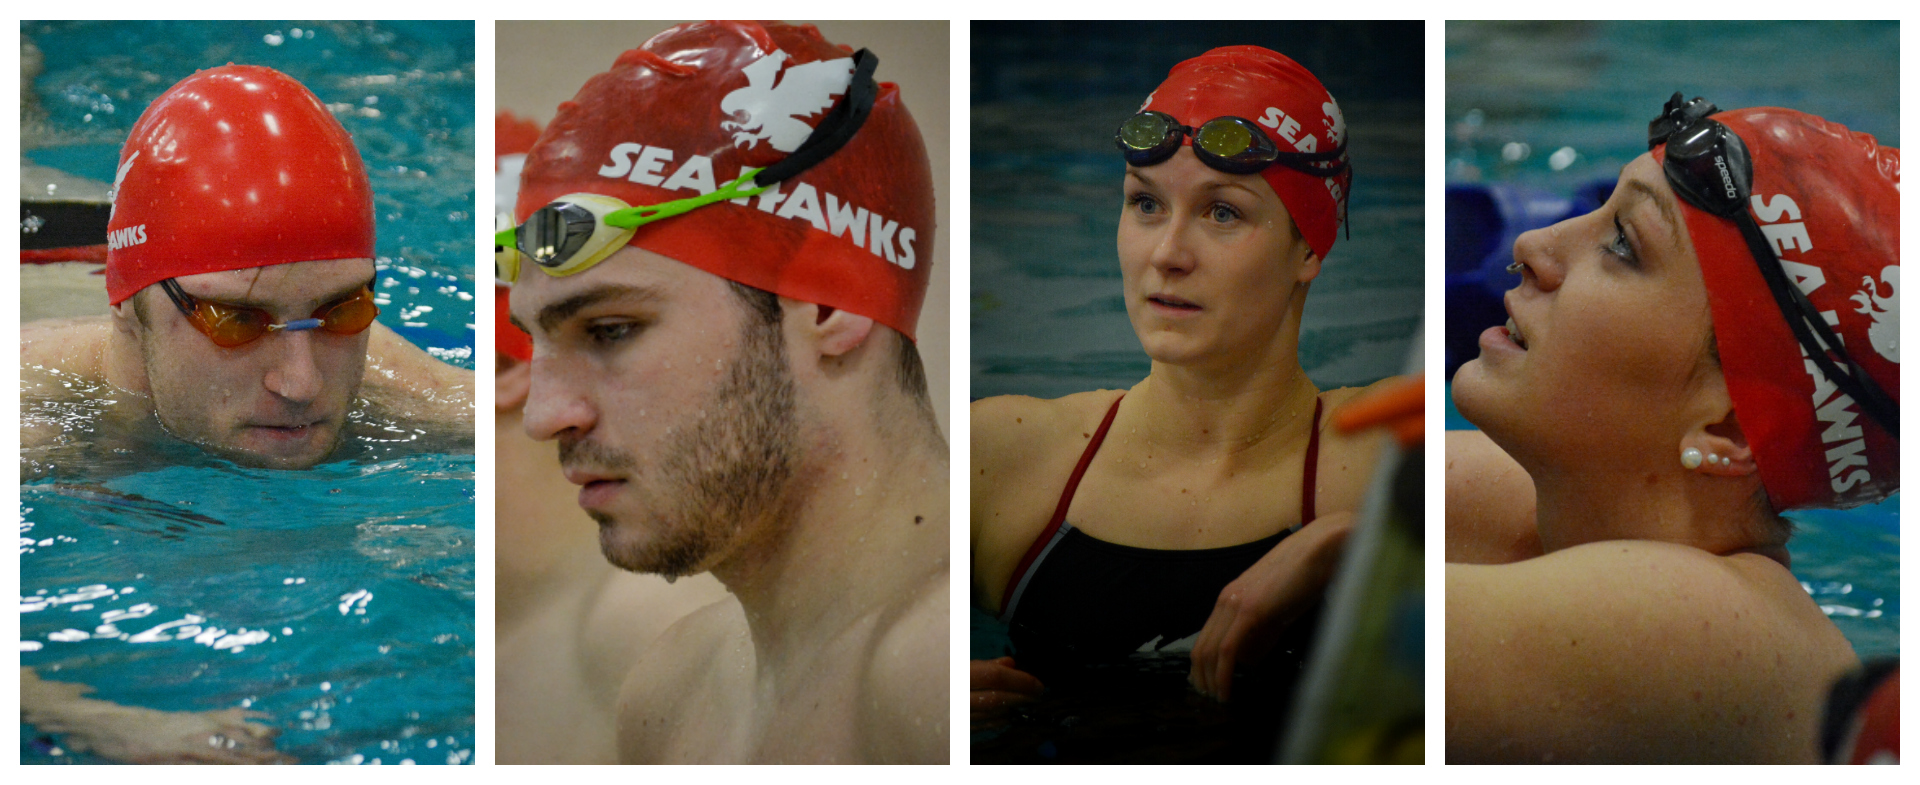 Sea-Hawks Swimmers off to Laval